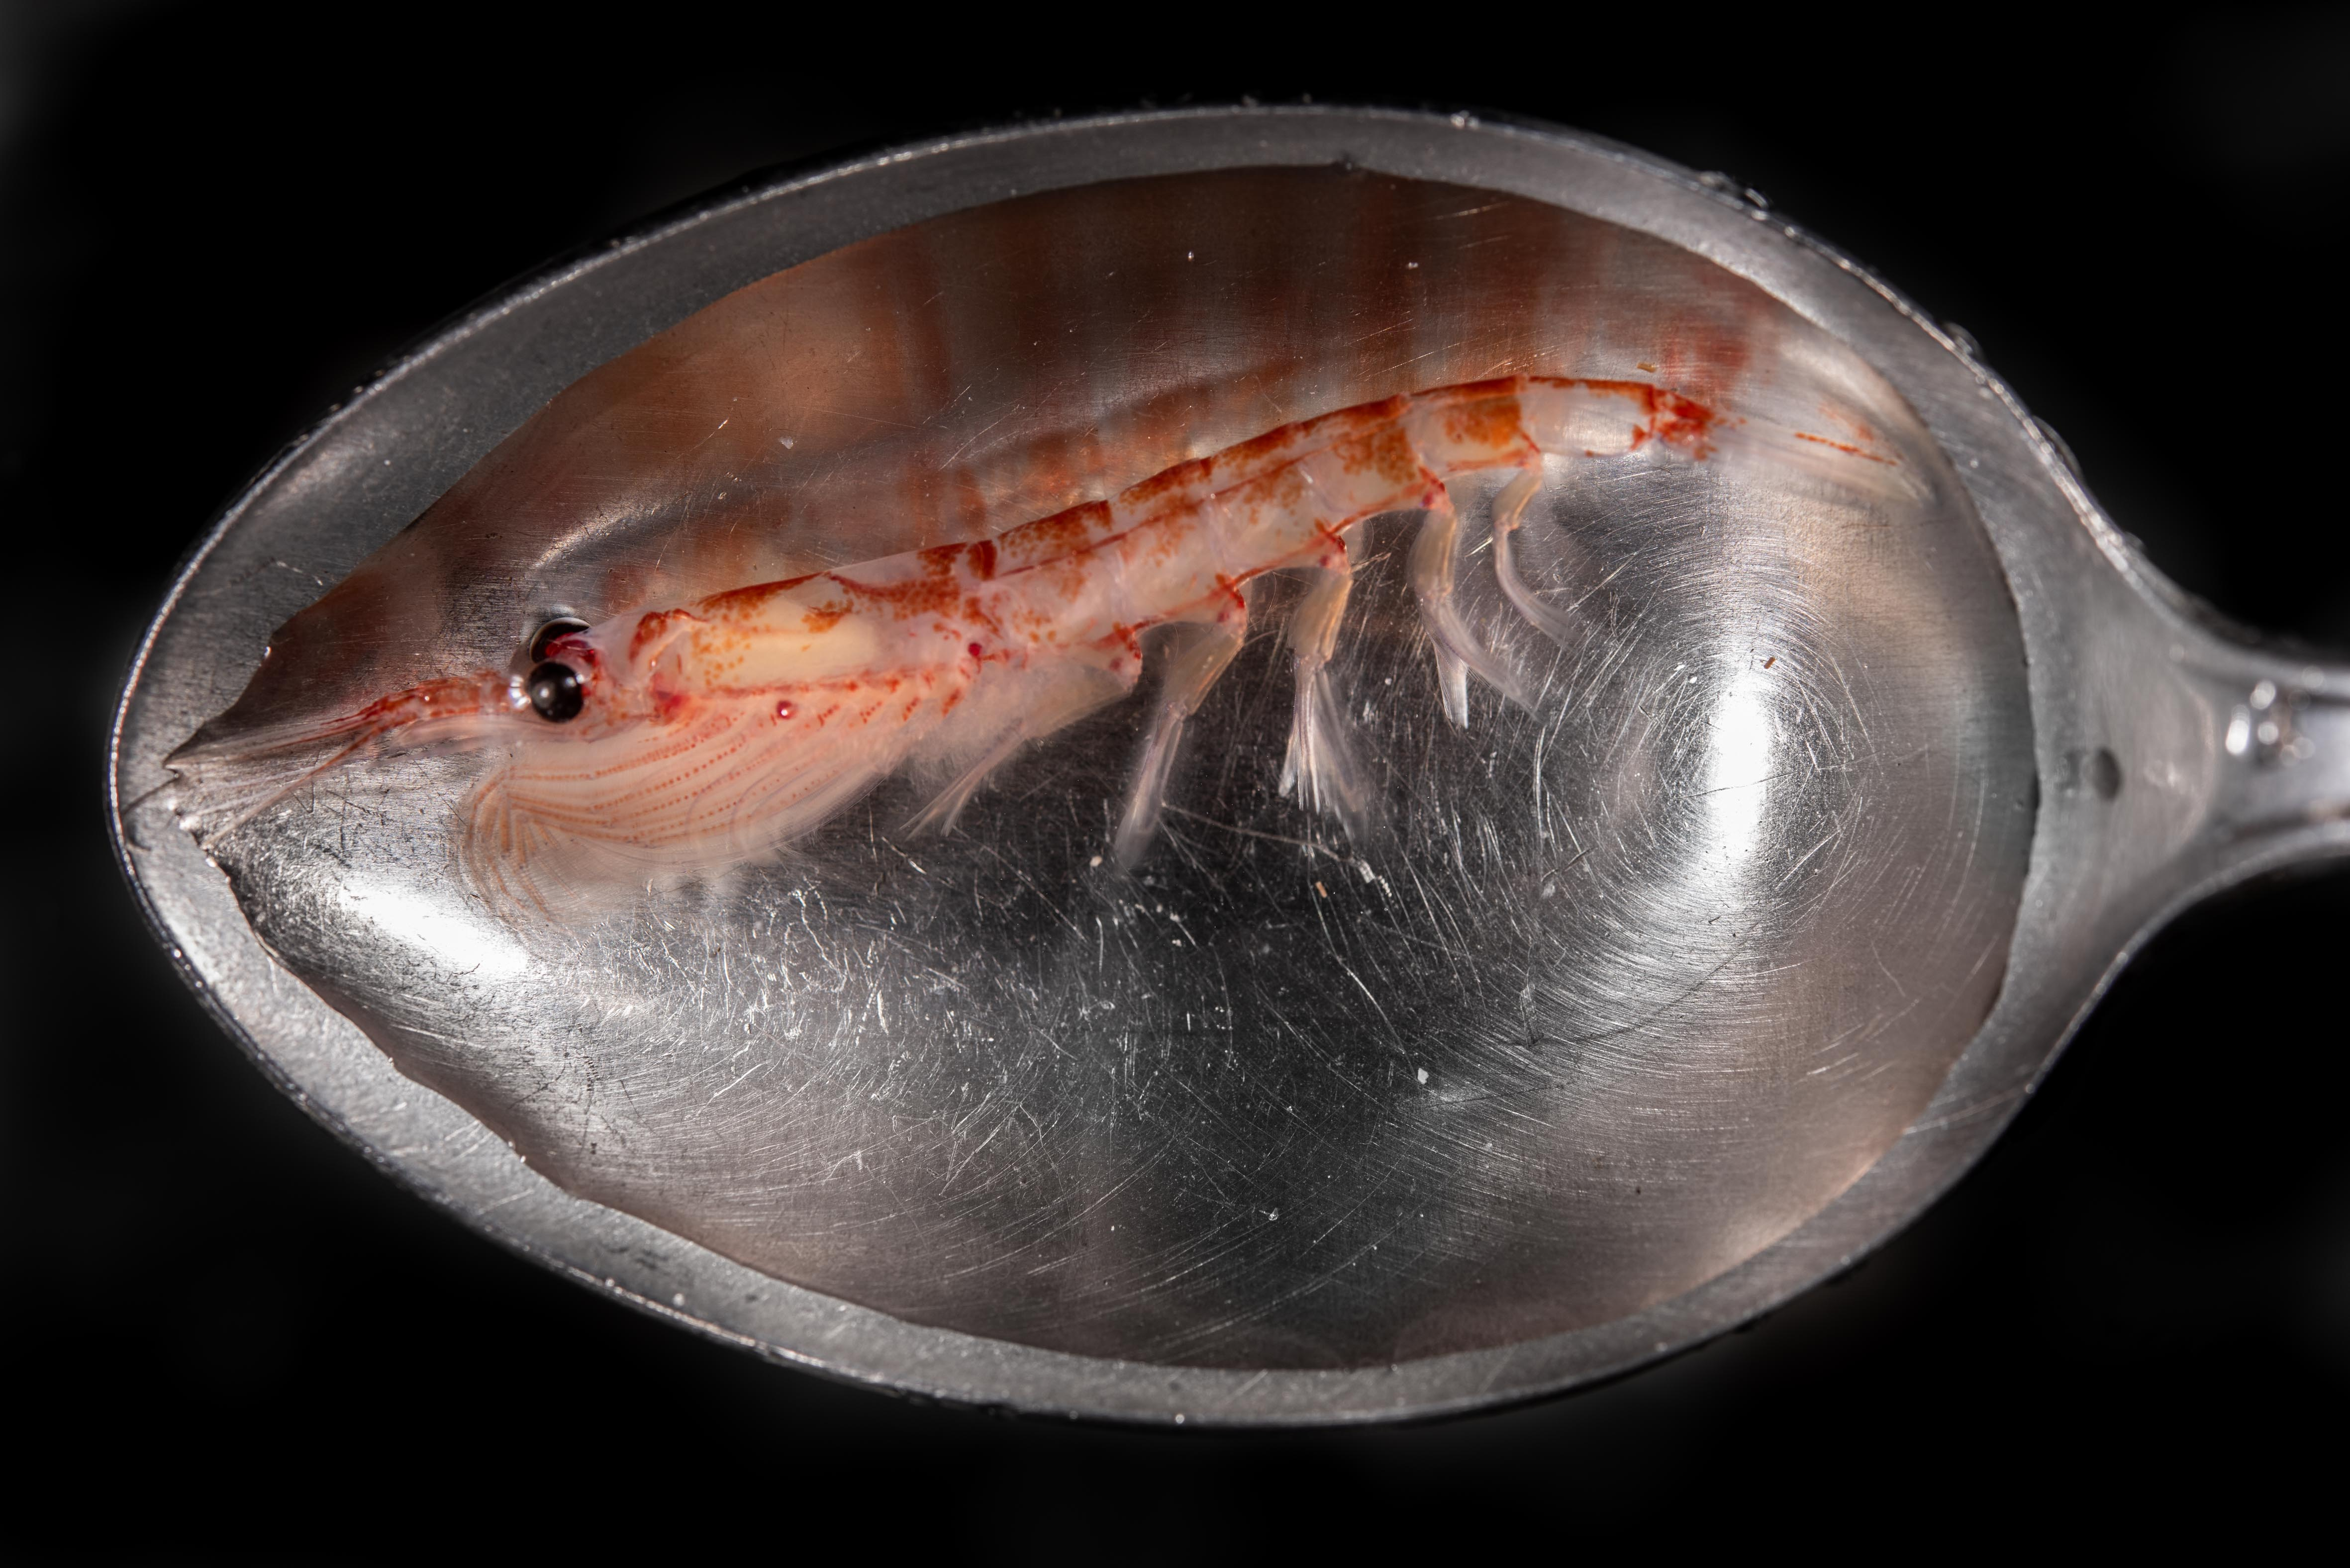 Size of Antarctic krill compared with a teaspoon. Photo by Jordi Chias, National Geographic Pristine Seas.